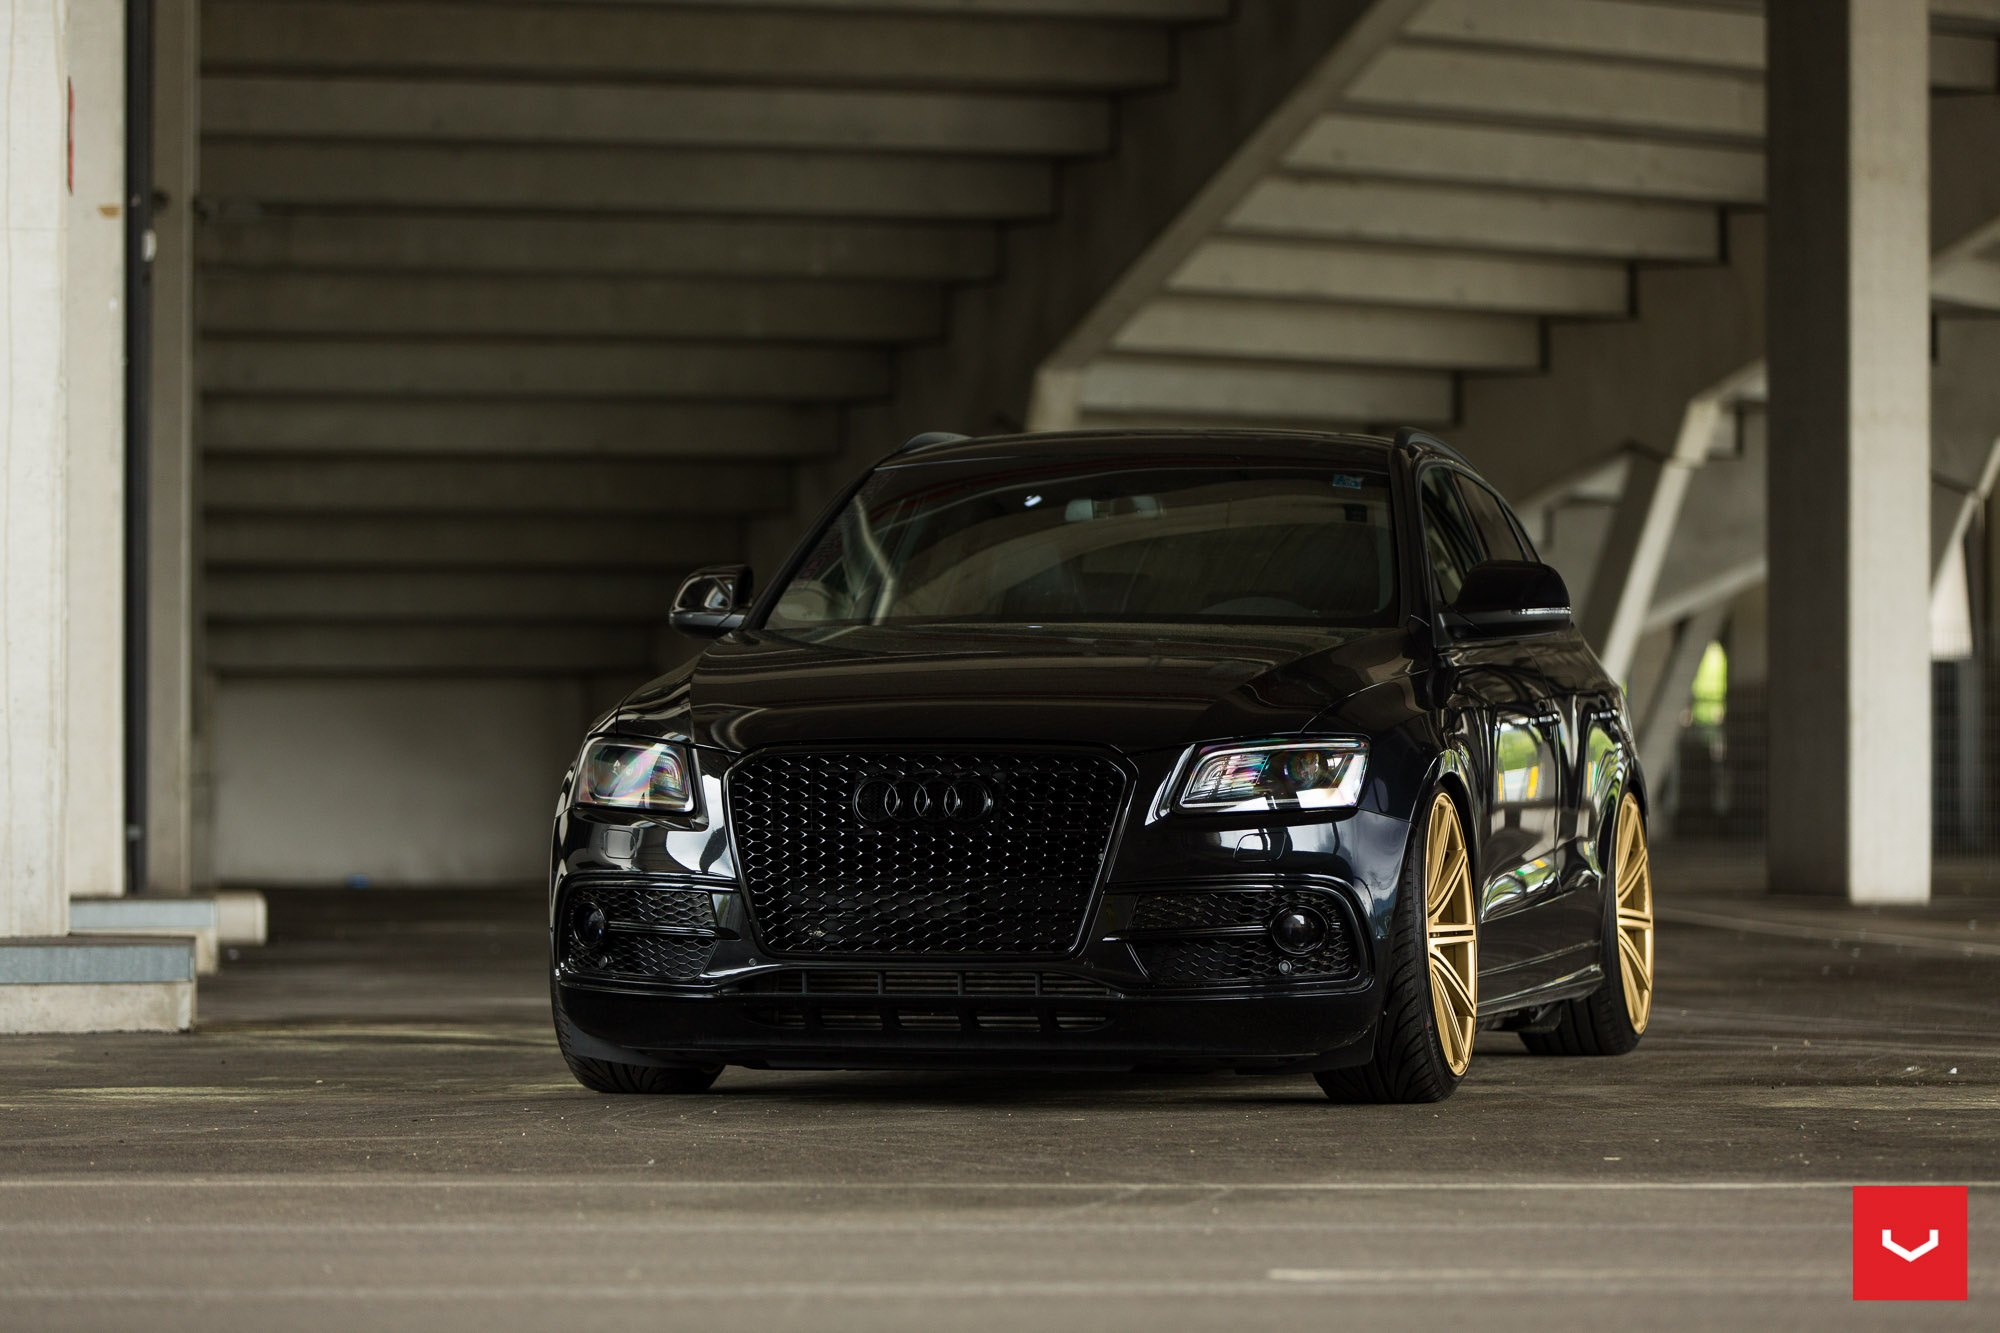 Audi Q5 Looking Menacing Being Blacked Out and Sitting on